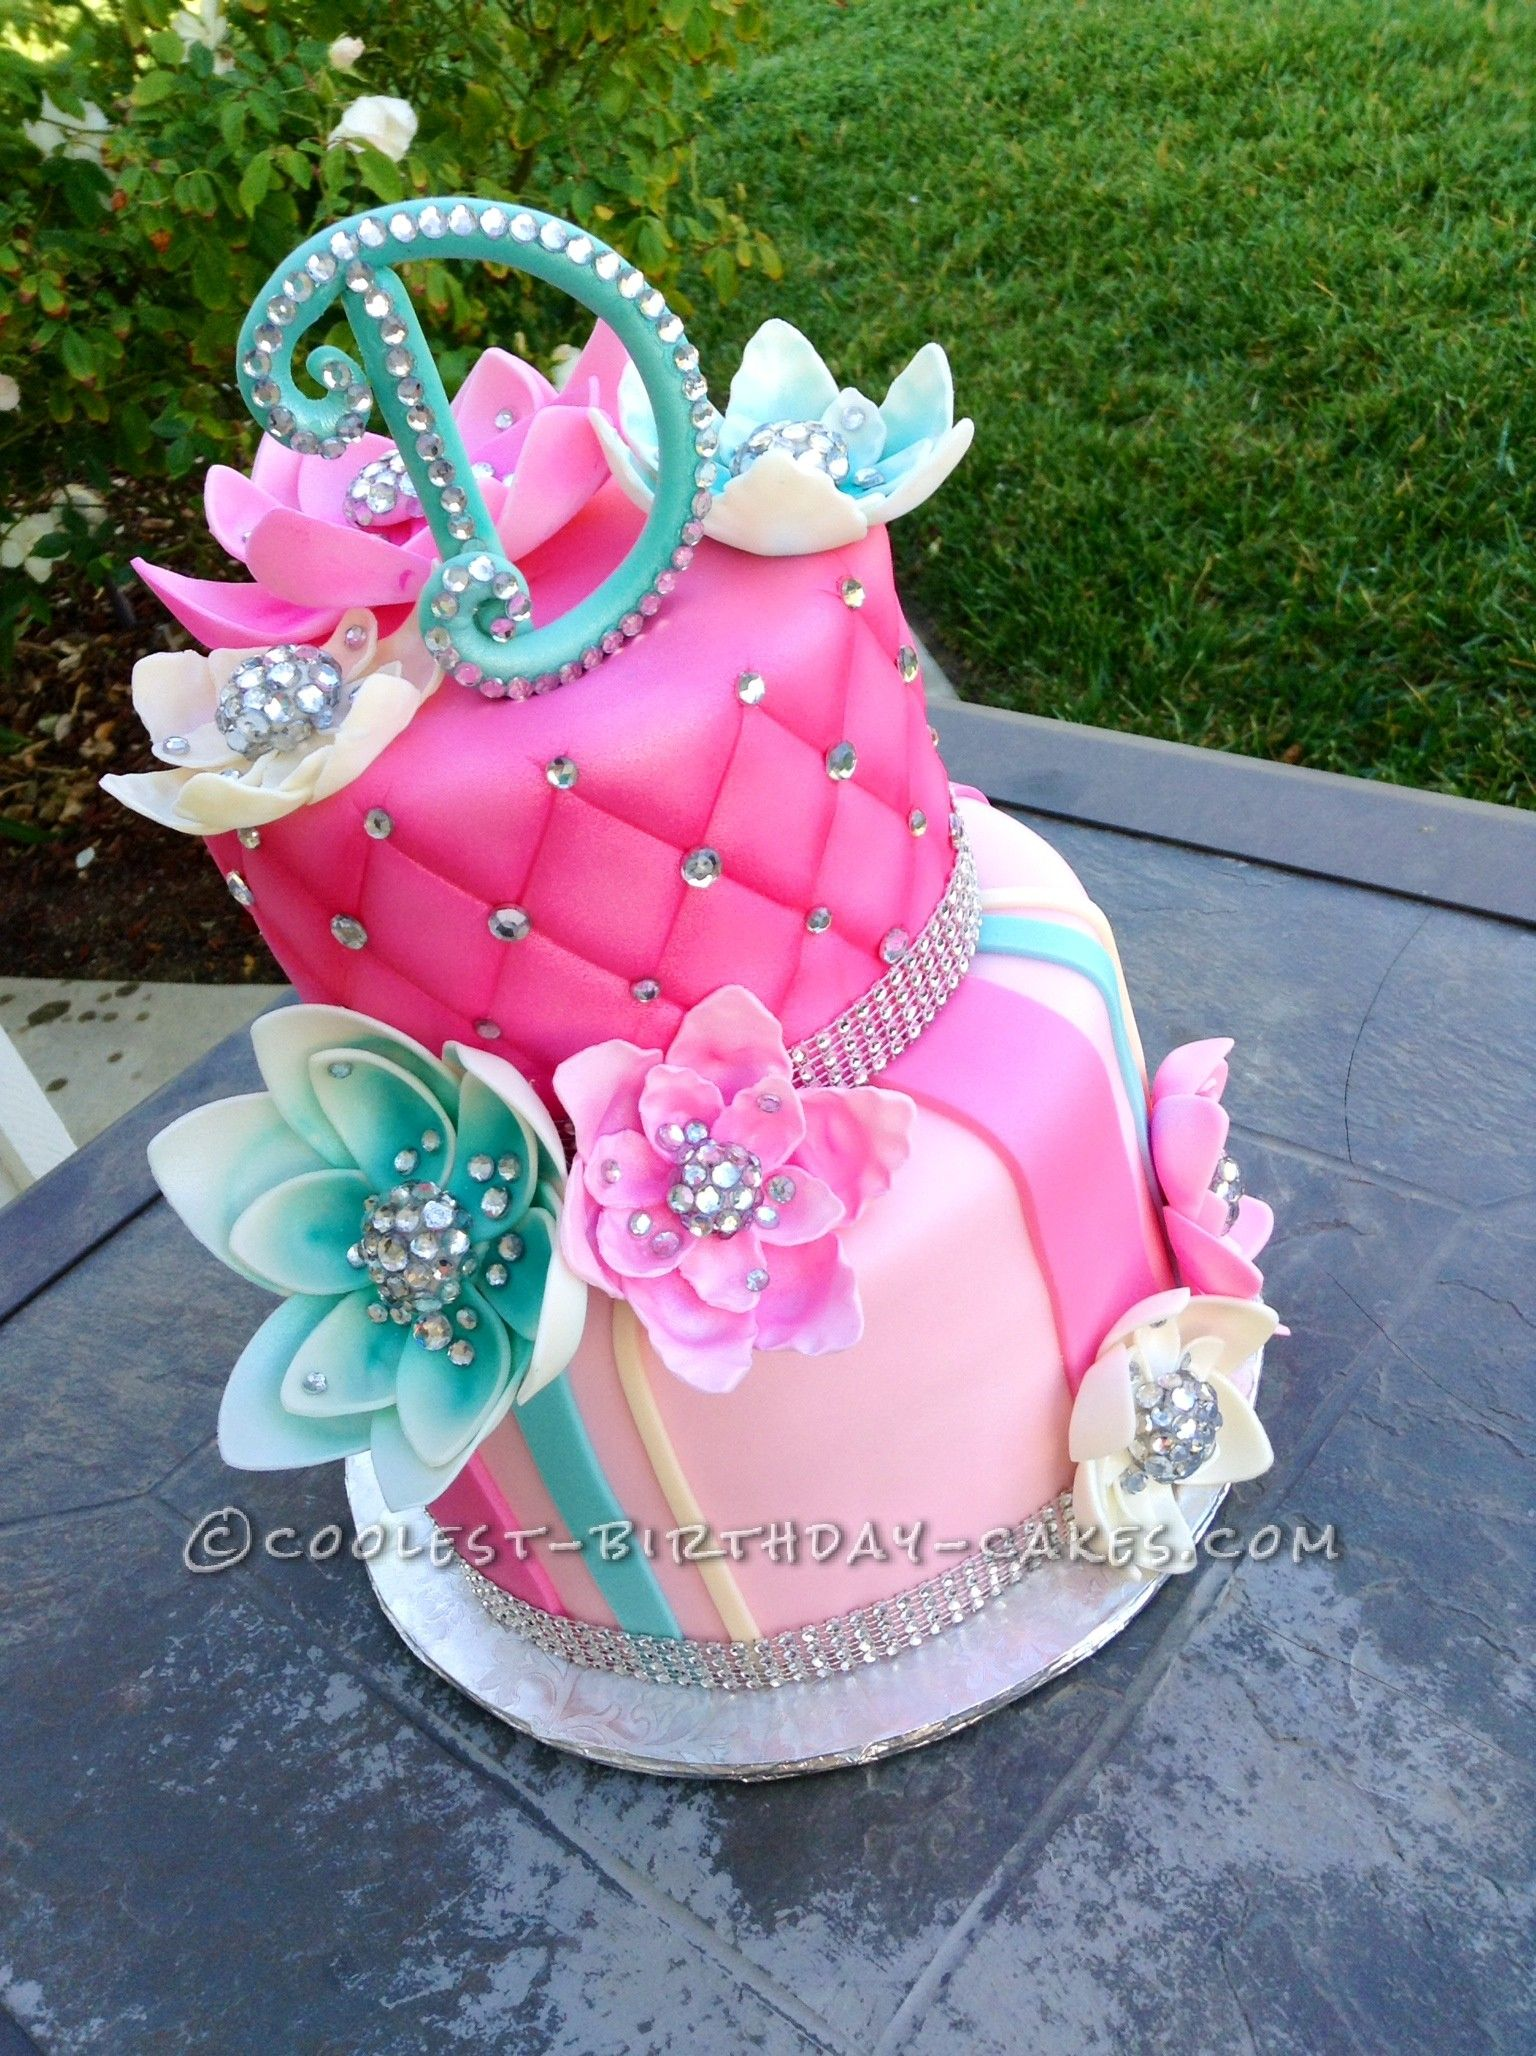 Homemade Birthday Cake Images ~ Delicious homemade beautiful birthday cake with bling cakes and